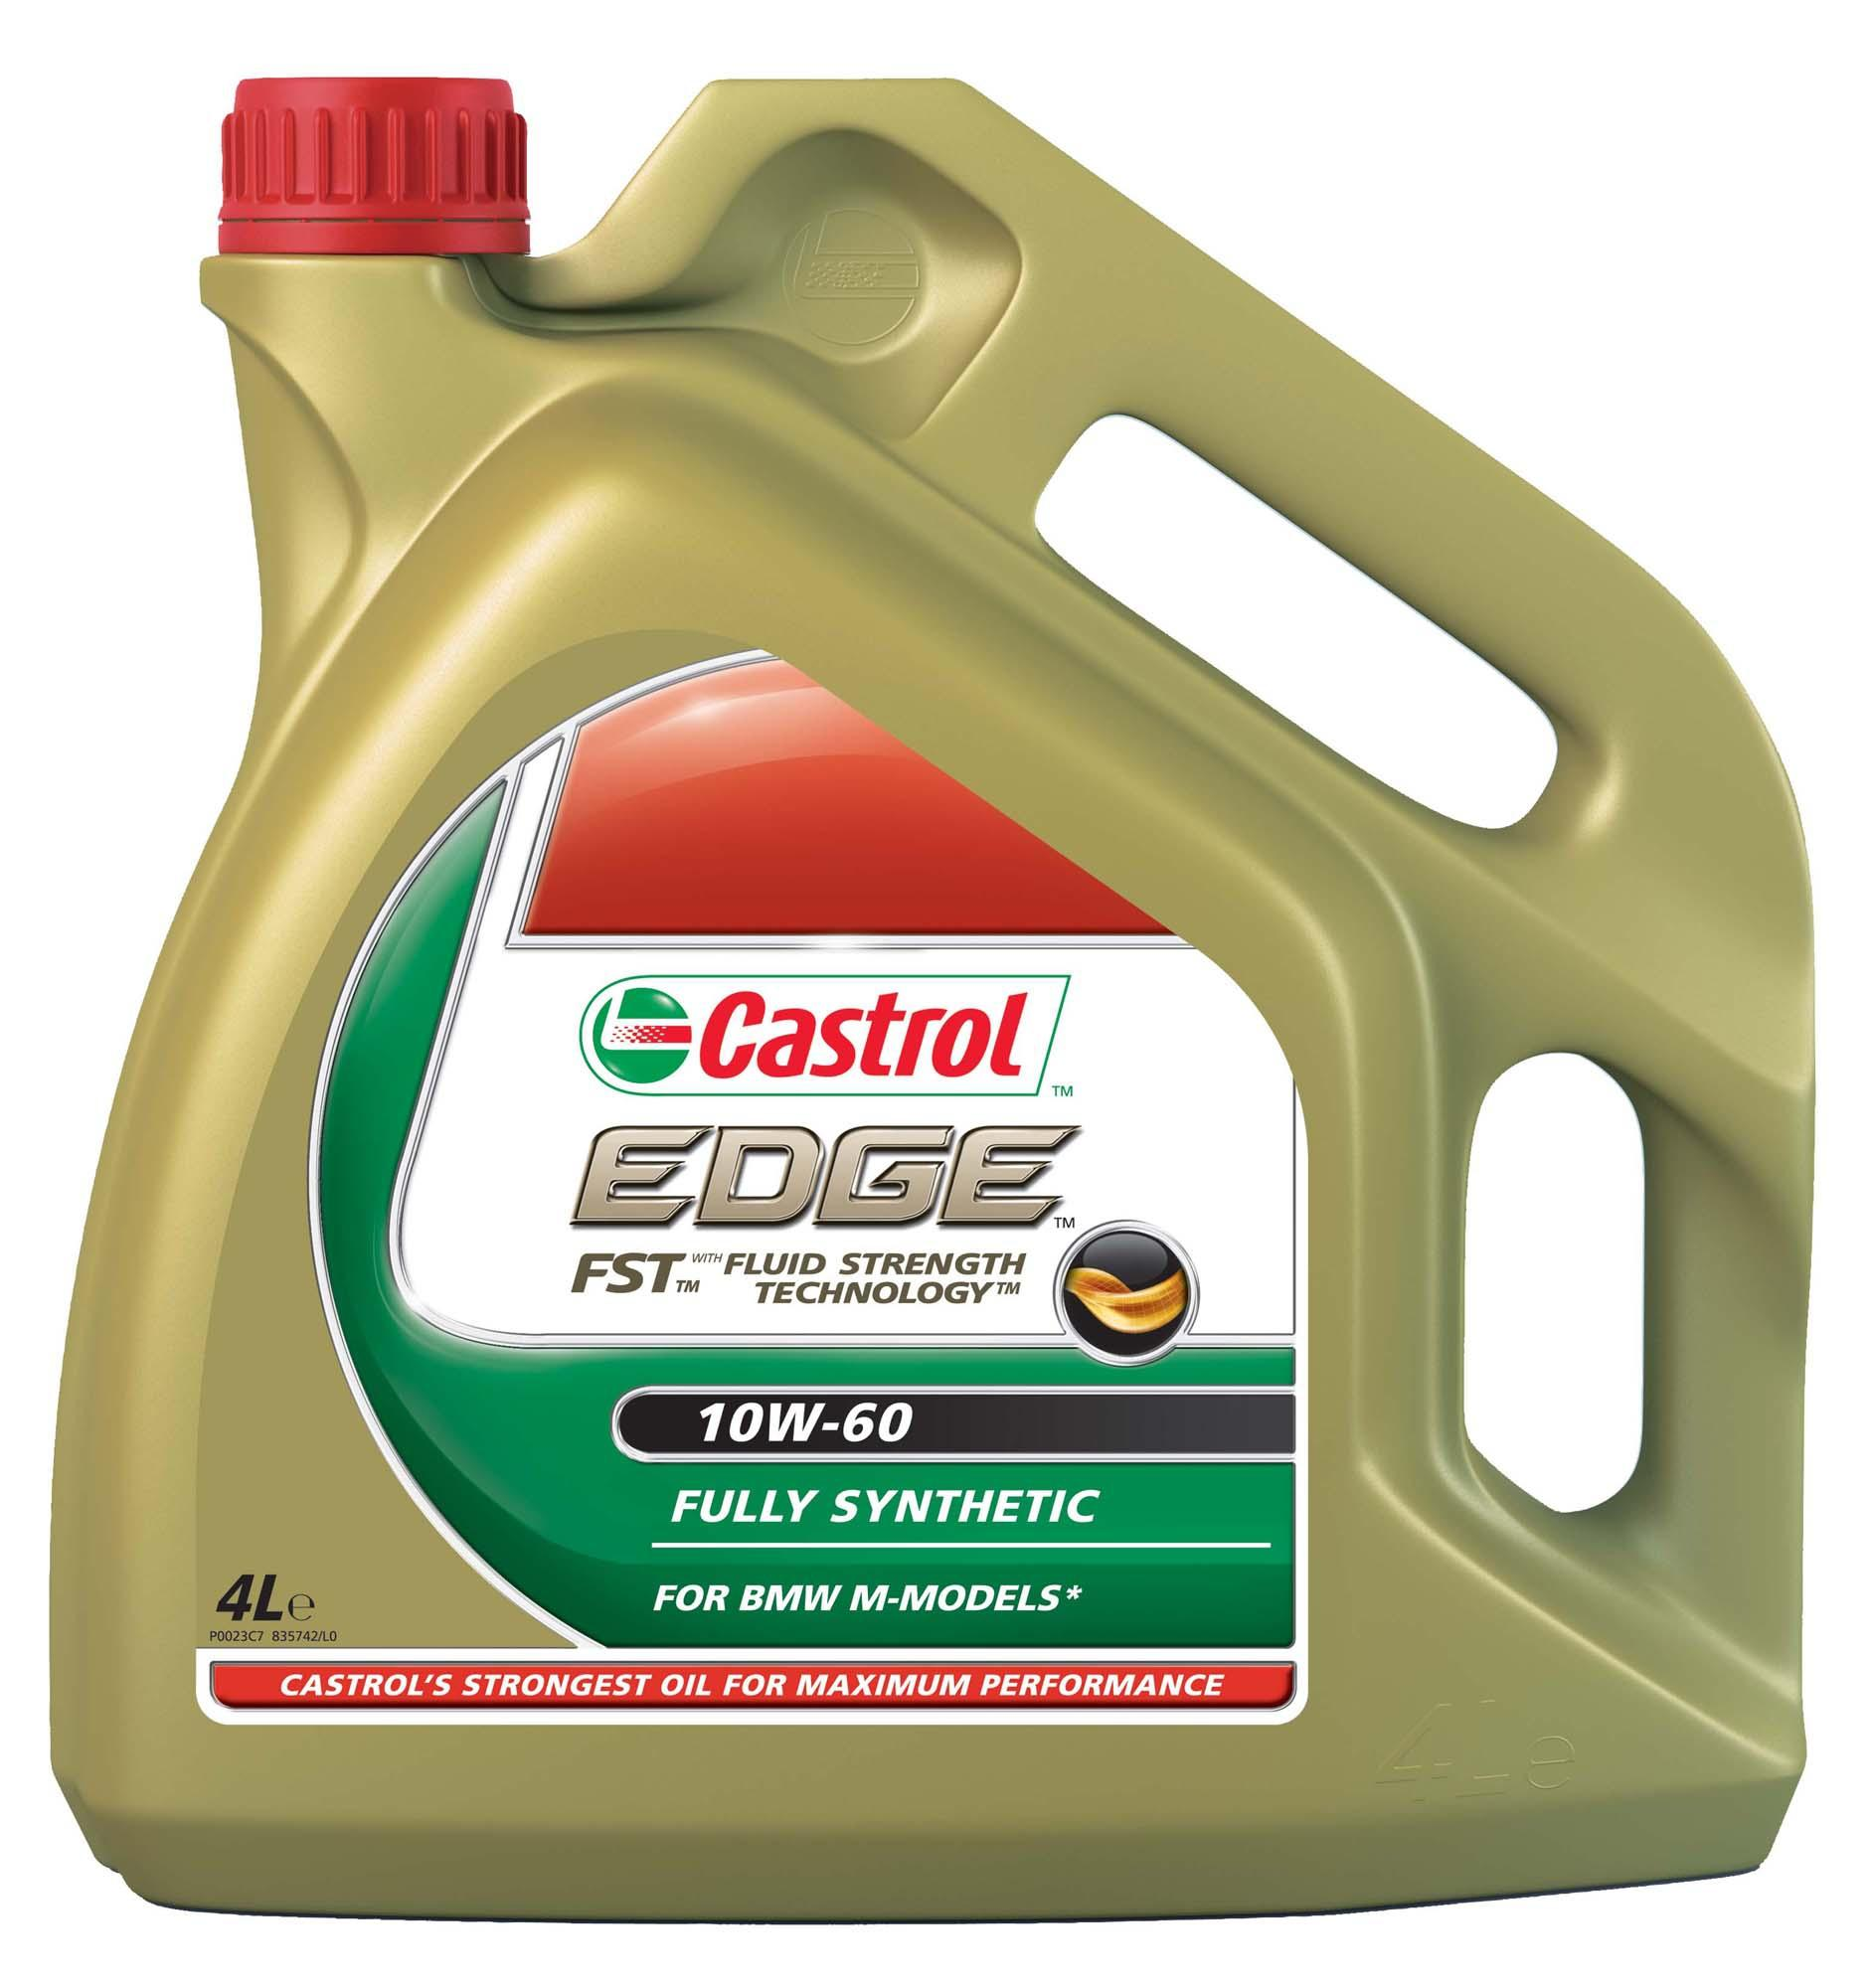 castrol edge sae 10w 60 motor engine oil 4 litres fully synthetic bmw m series ebay. Black Bedroom Furniture Sets. Home Design Ideas